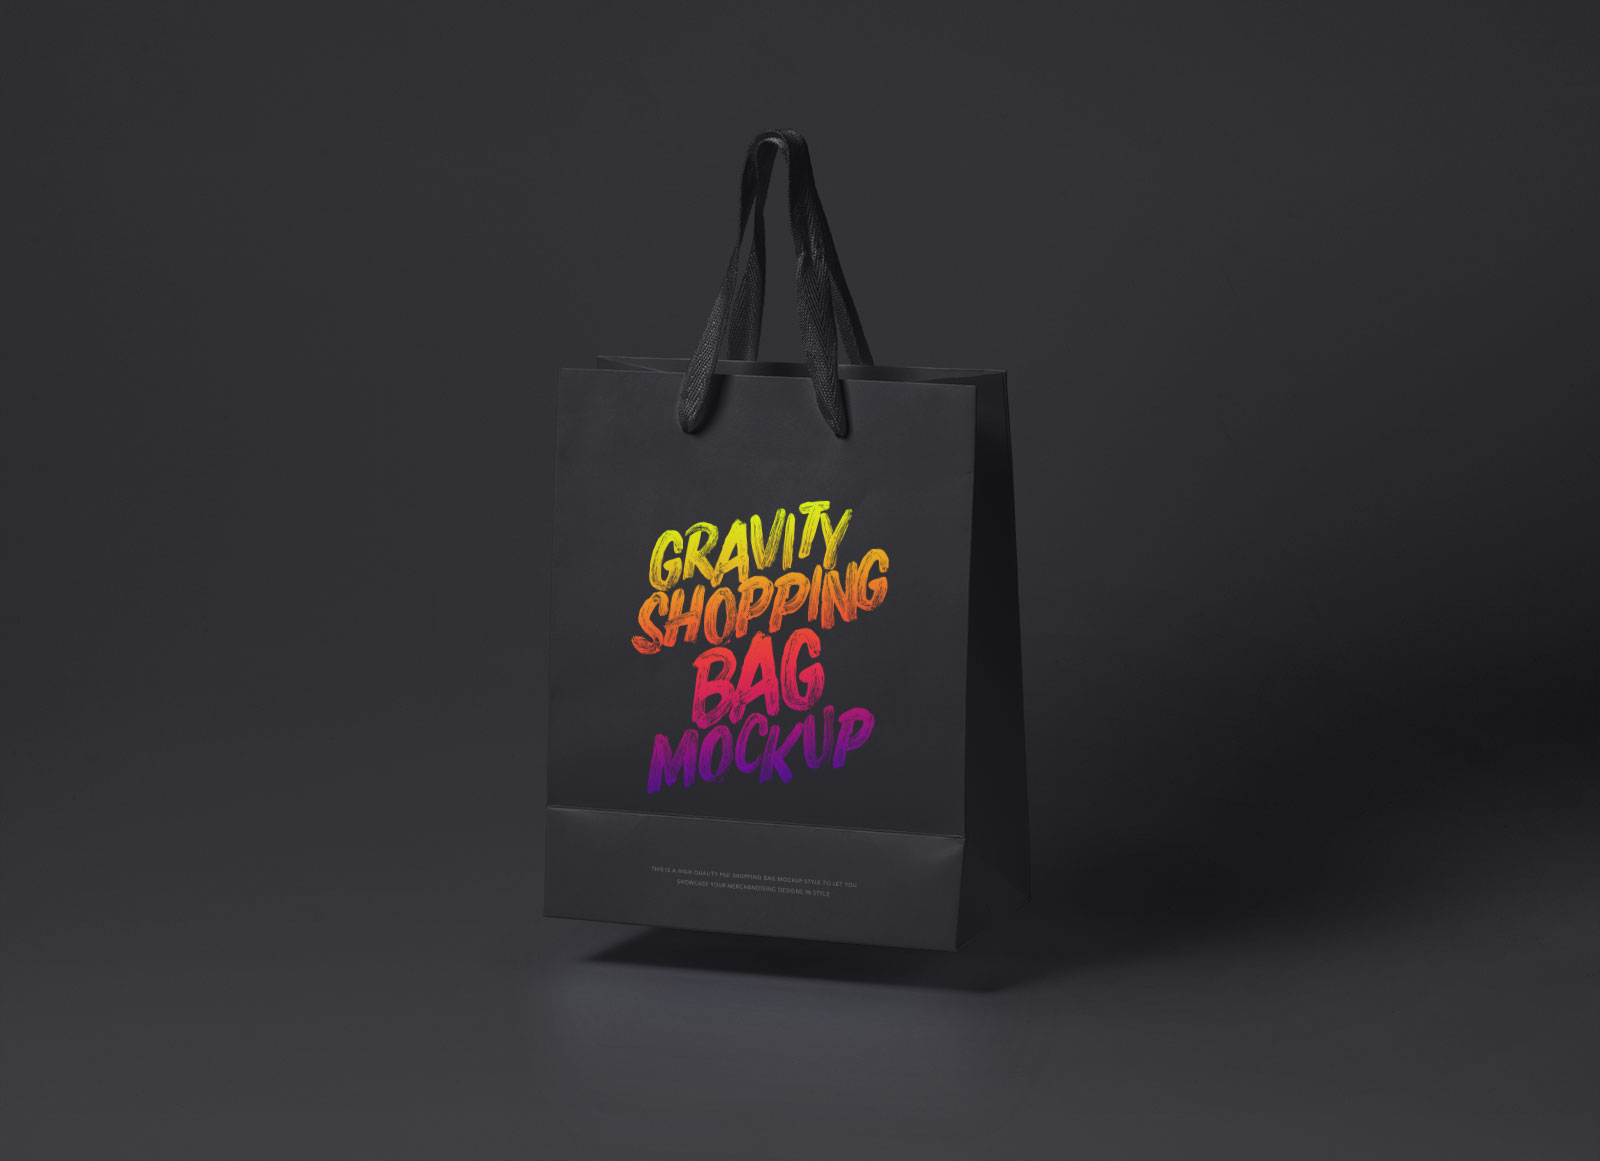 Free-Black-&-White-Floating-Shopping-Bag-Mockup-PSD-3